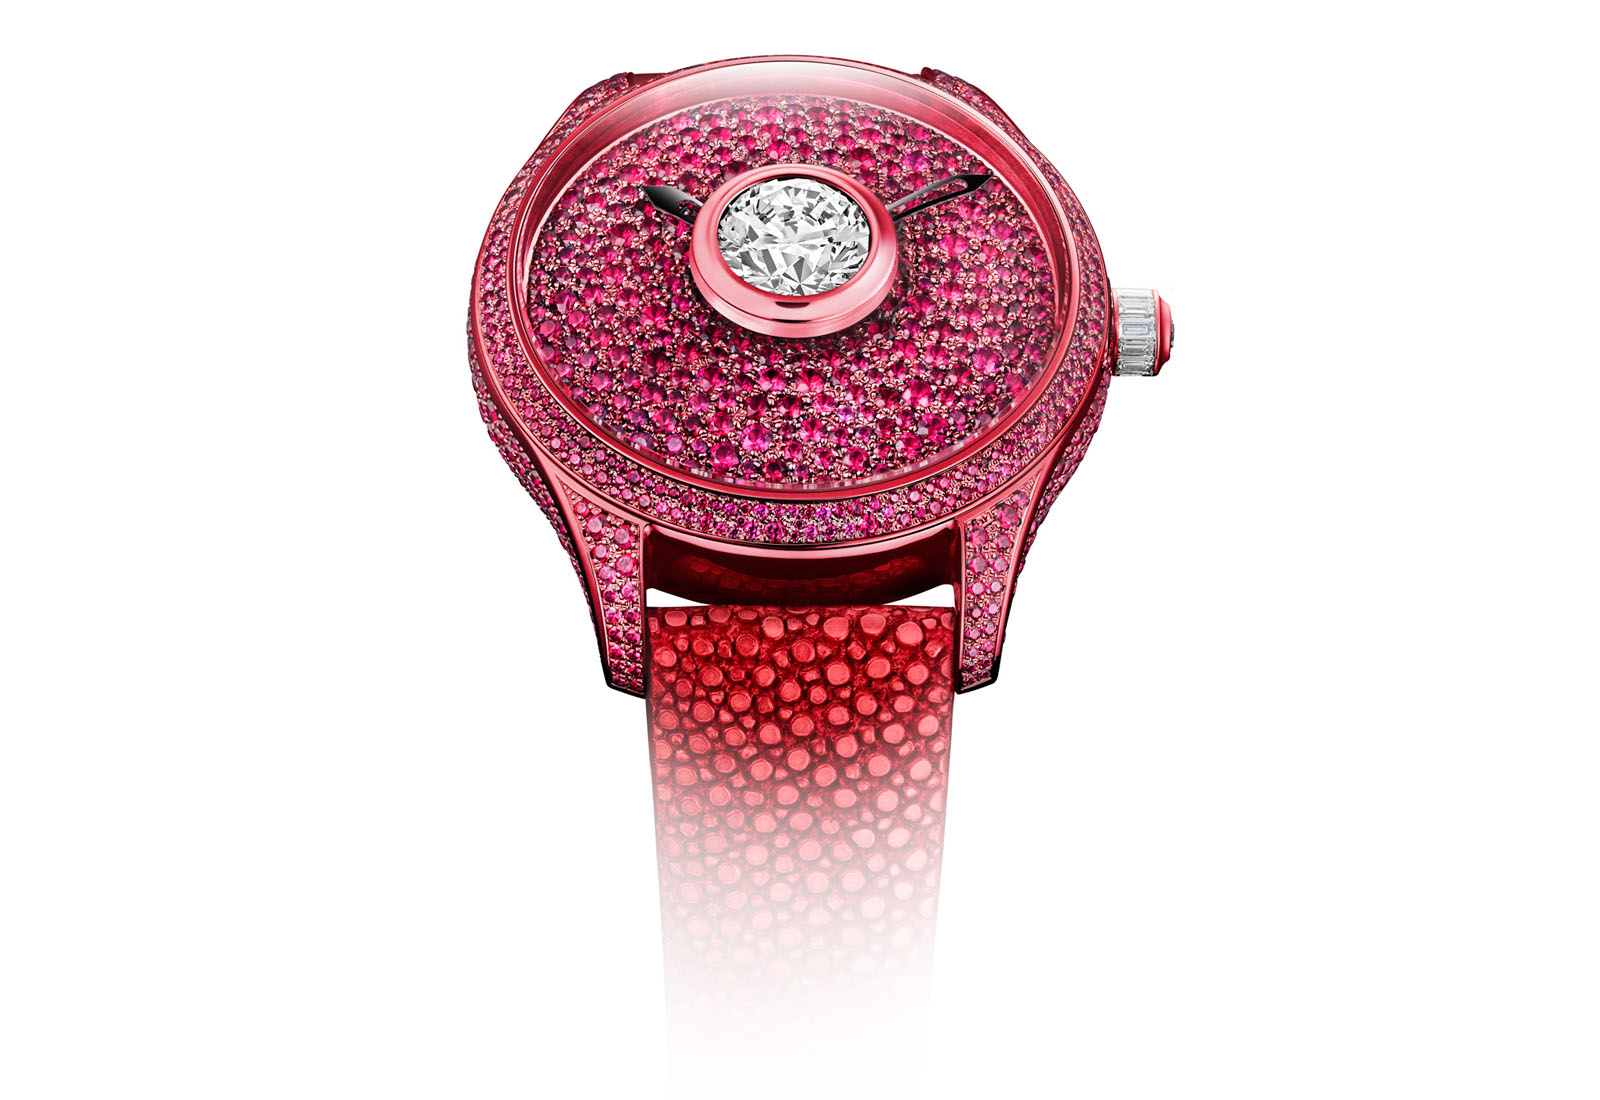 De Tournemire Rubis watch with rubies and diamonds